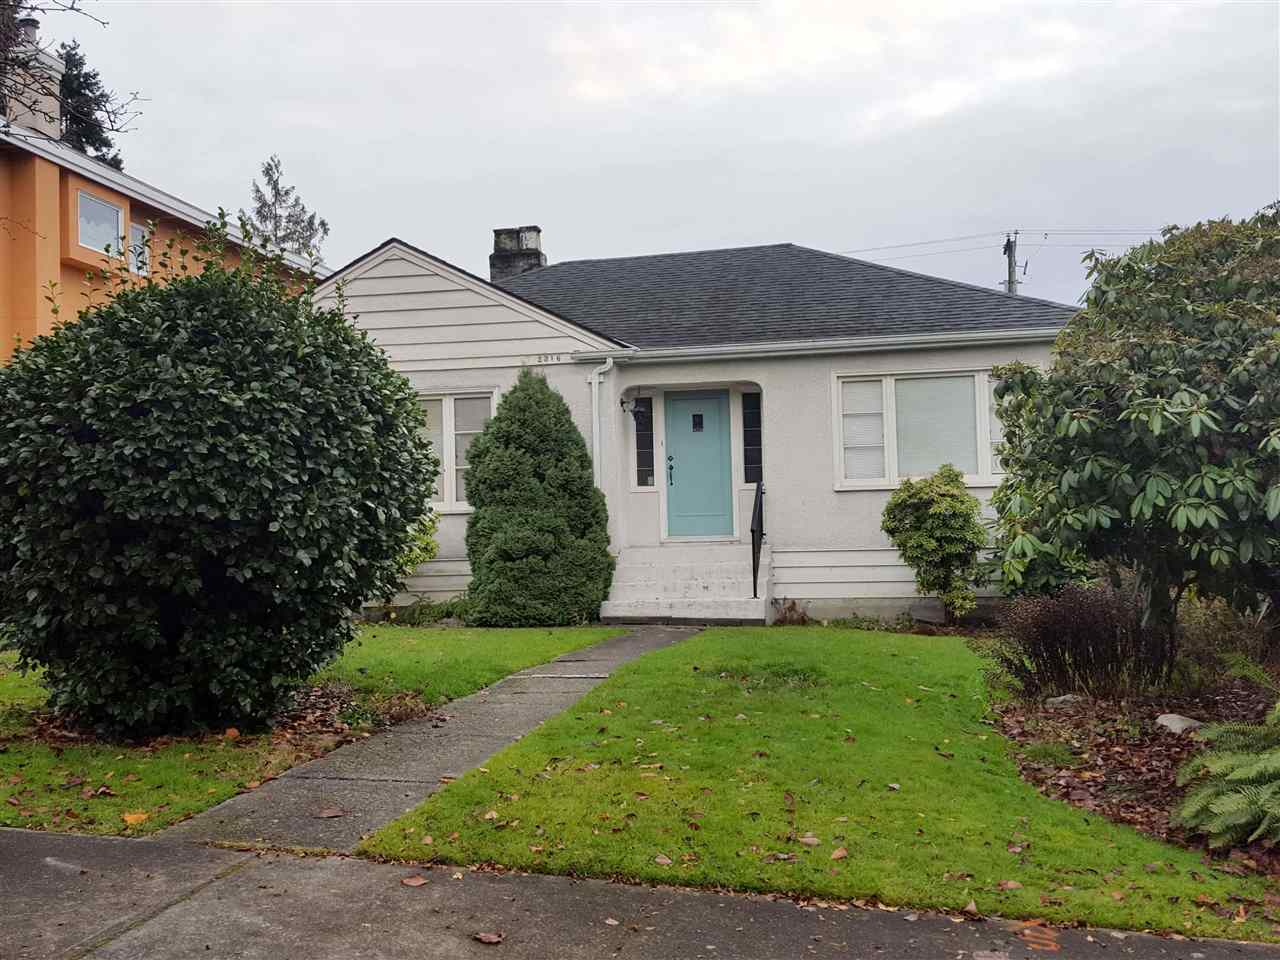 Main Photo: 2316 W 21ST Avenue in Vancouver: Arbutus House for sale (Vancouver West)  : MLS®# R2225210